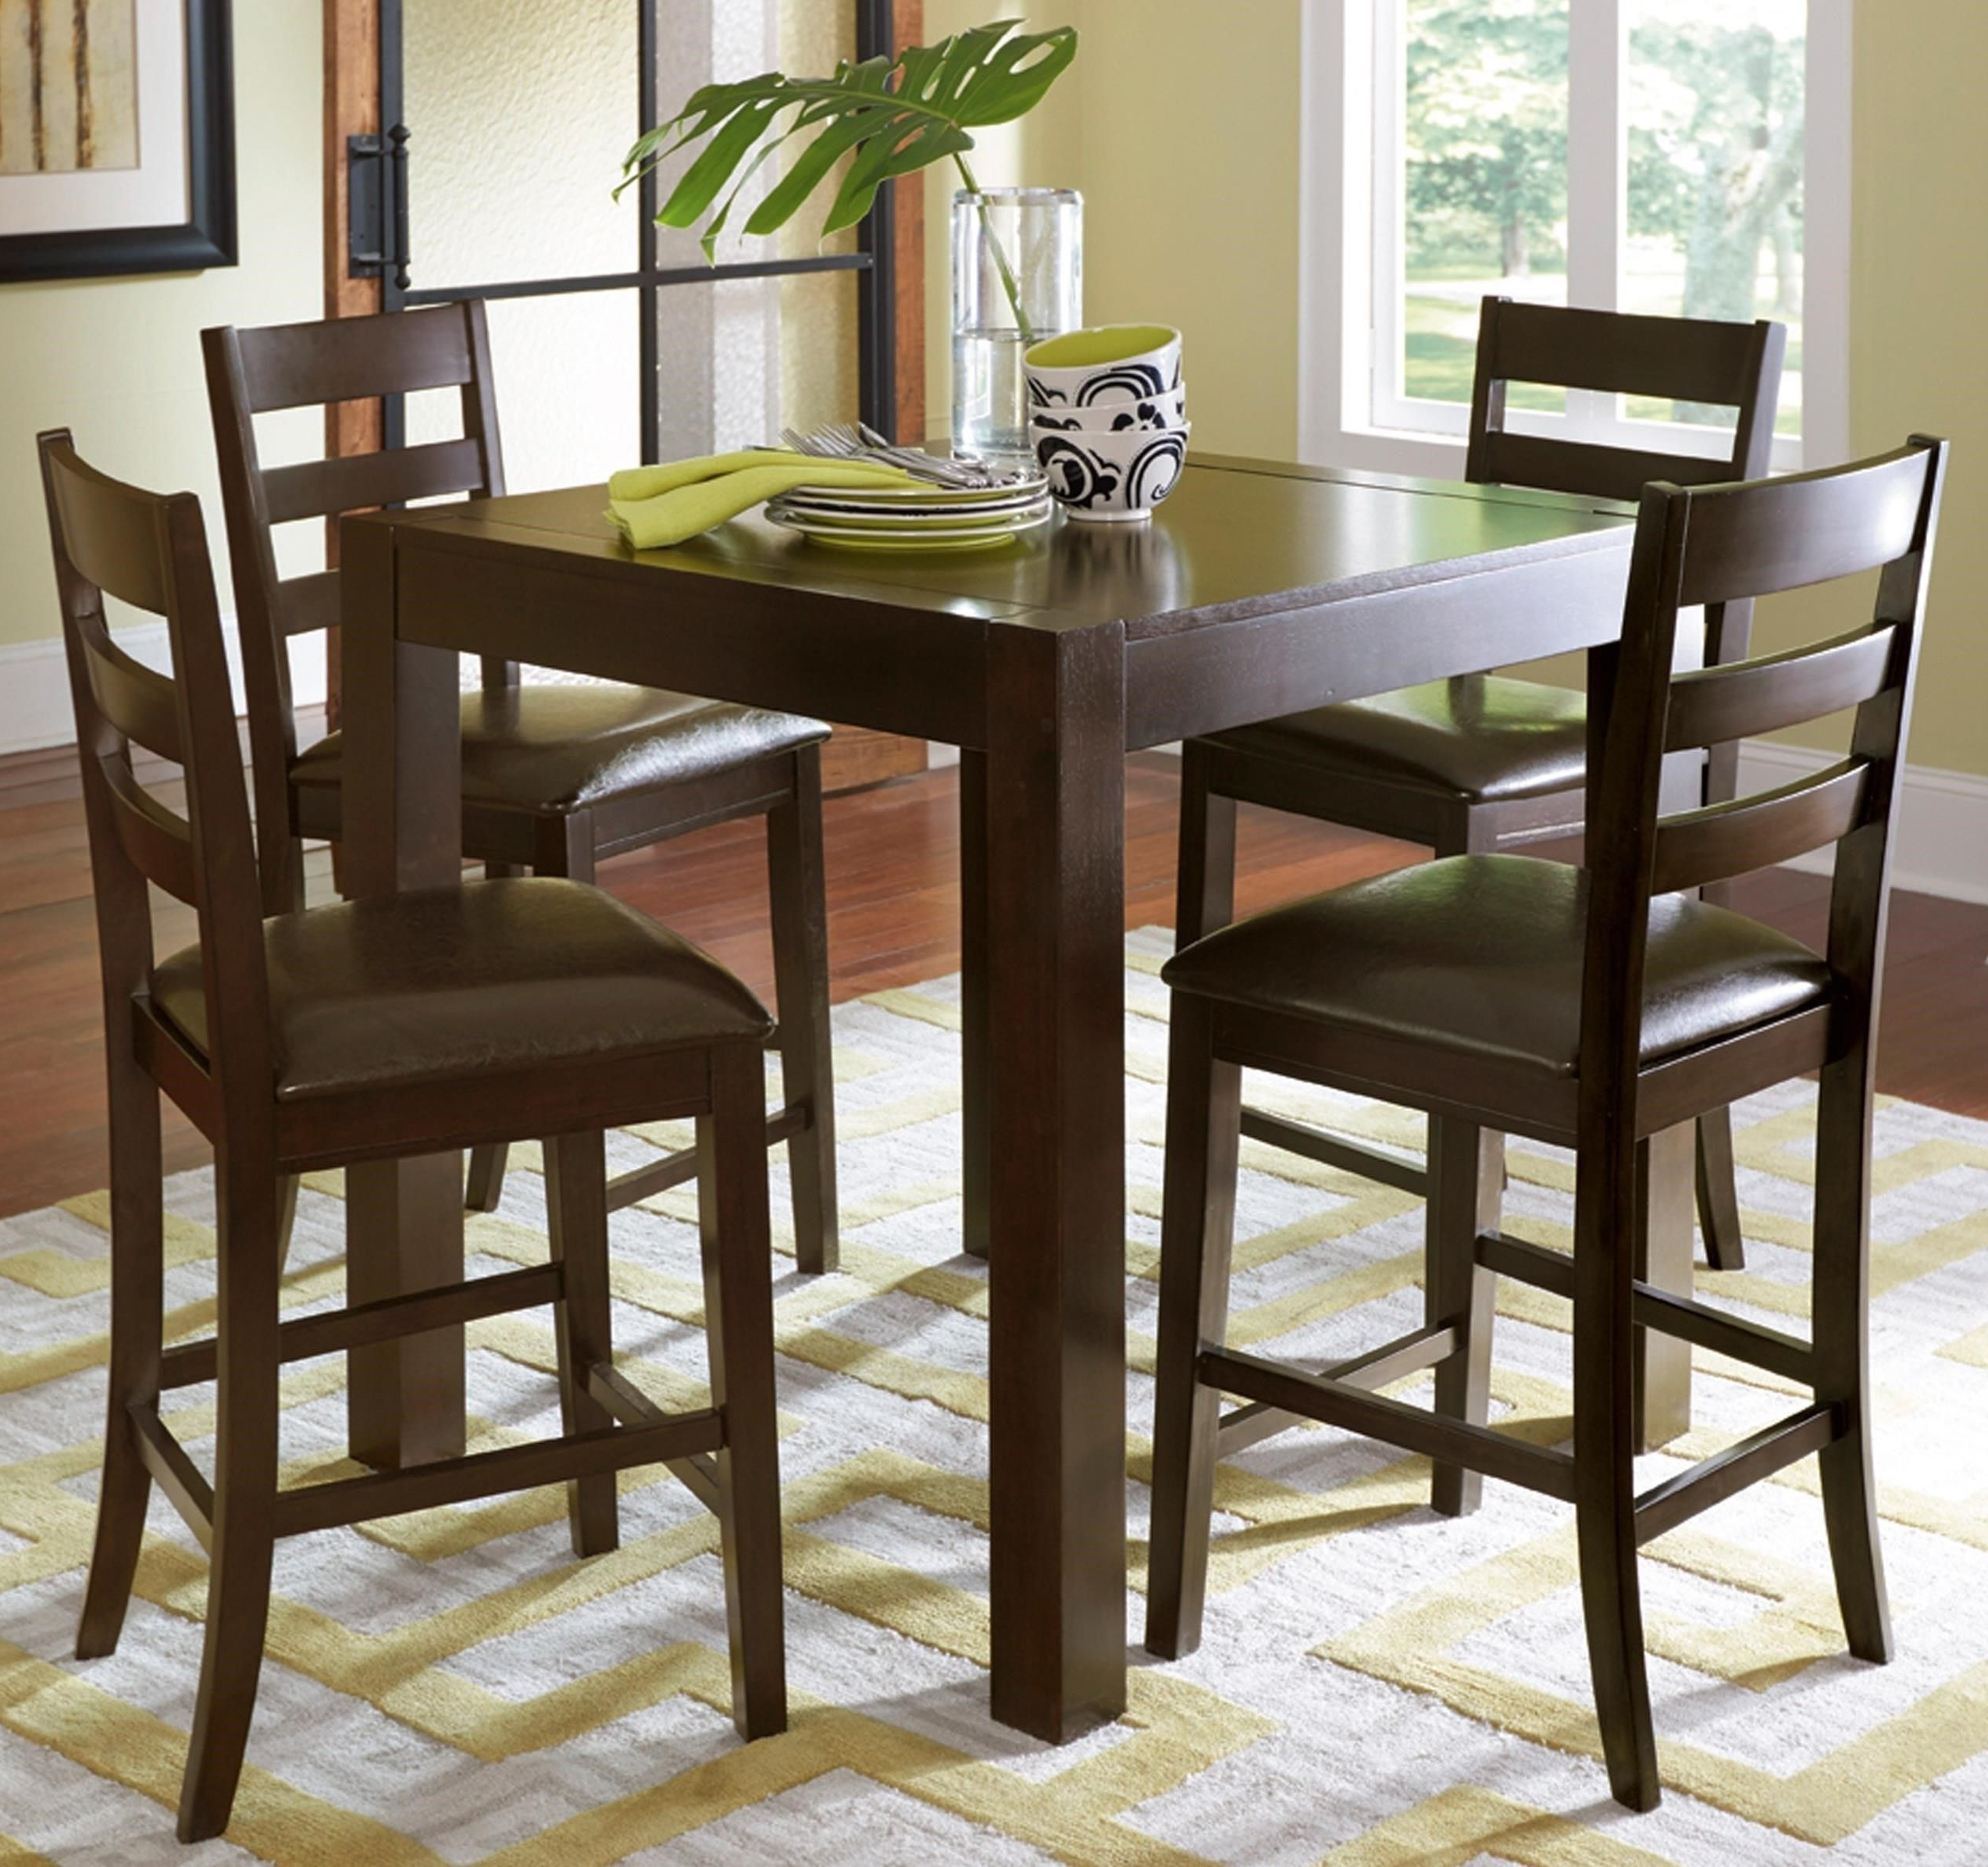 Well Liked Amini 5 Piece Butterfly Counter Table Setprogressive Furniture For Hyland 5 Piece Counter Sets With Bench (View 20 of 25)